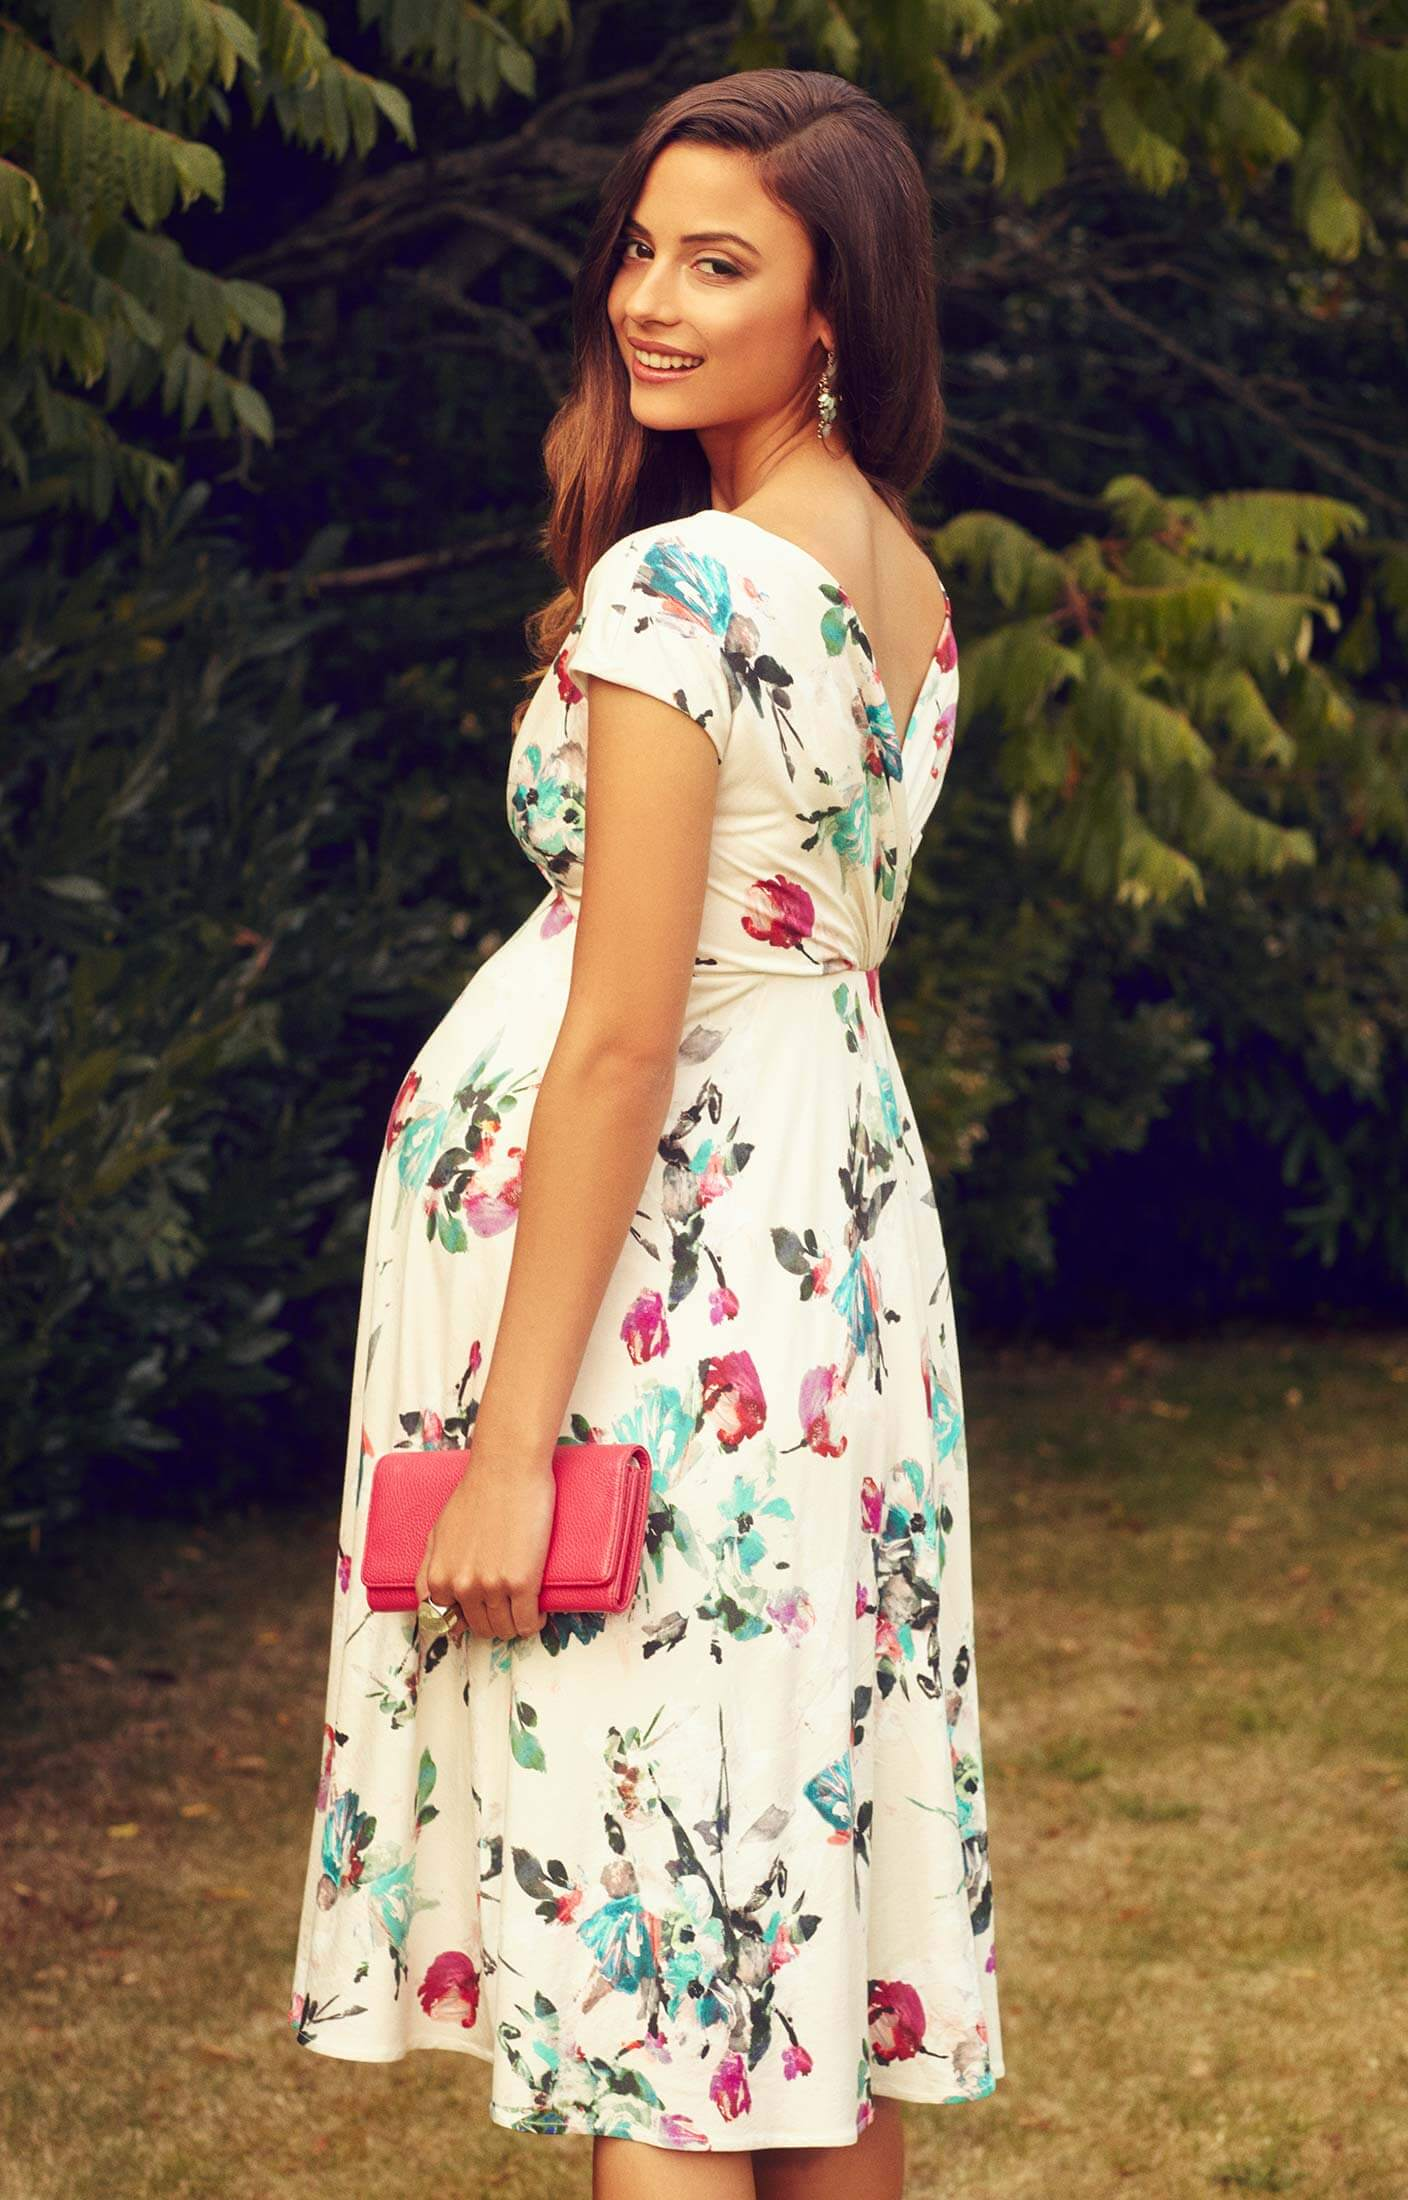 Wedding guest maternity dresses from uk designer tiffany rose alessandra maternity dress short painterly floral ombrellifo Image collections